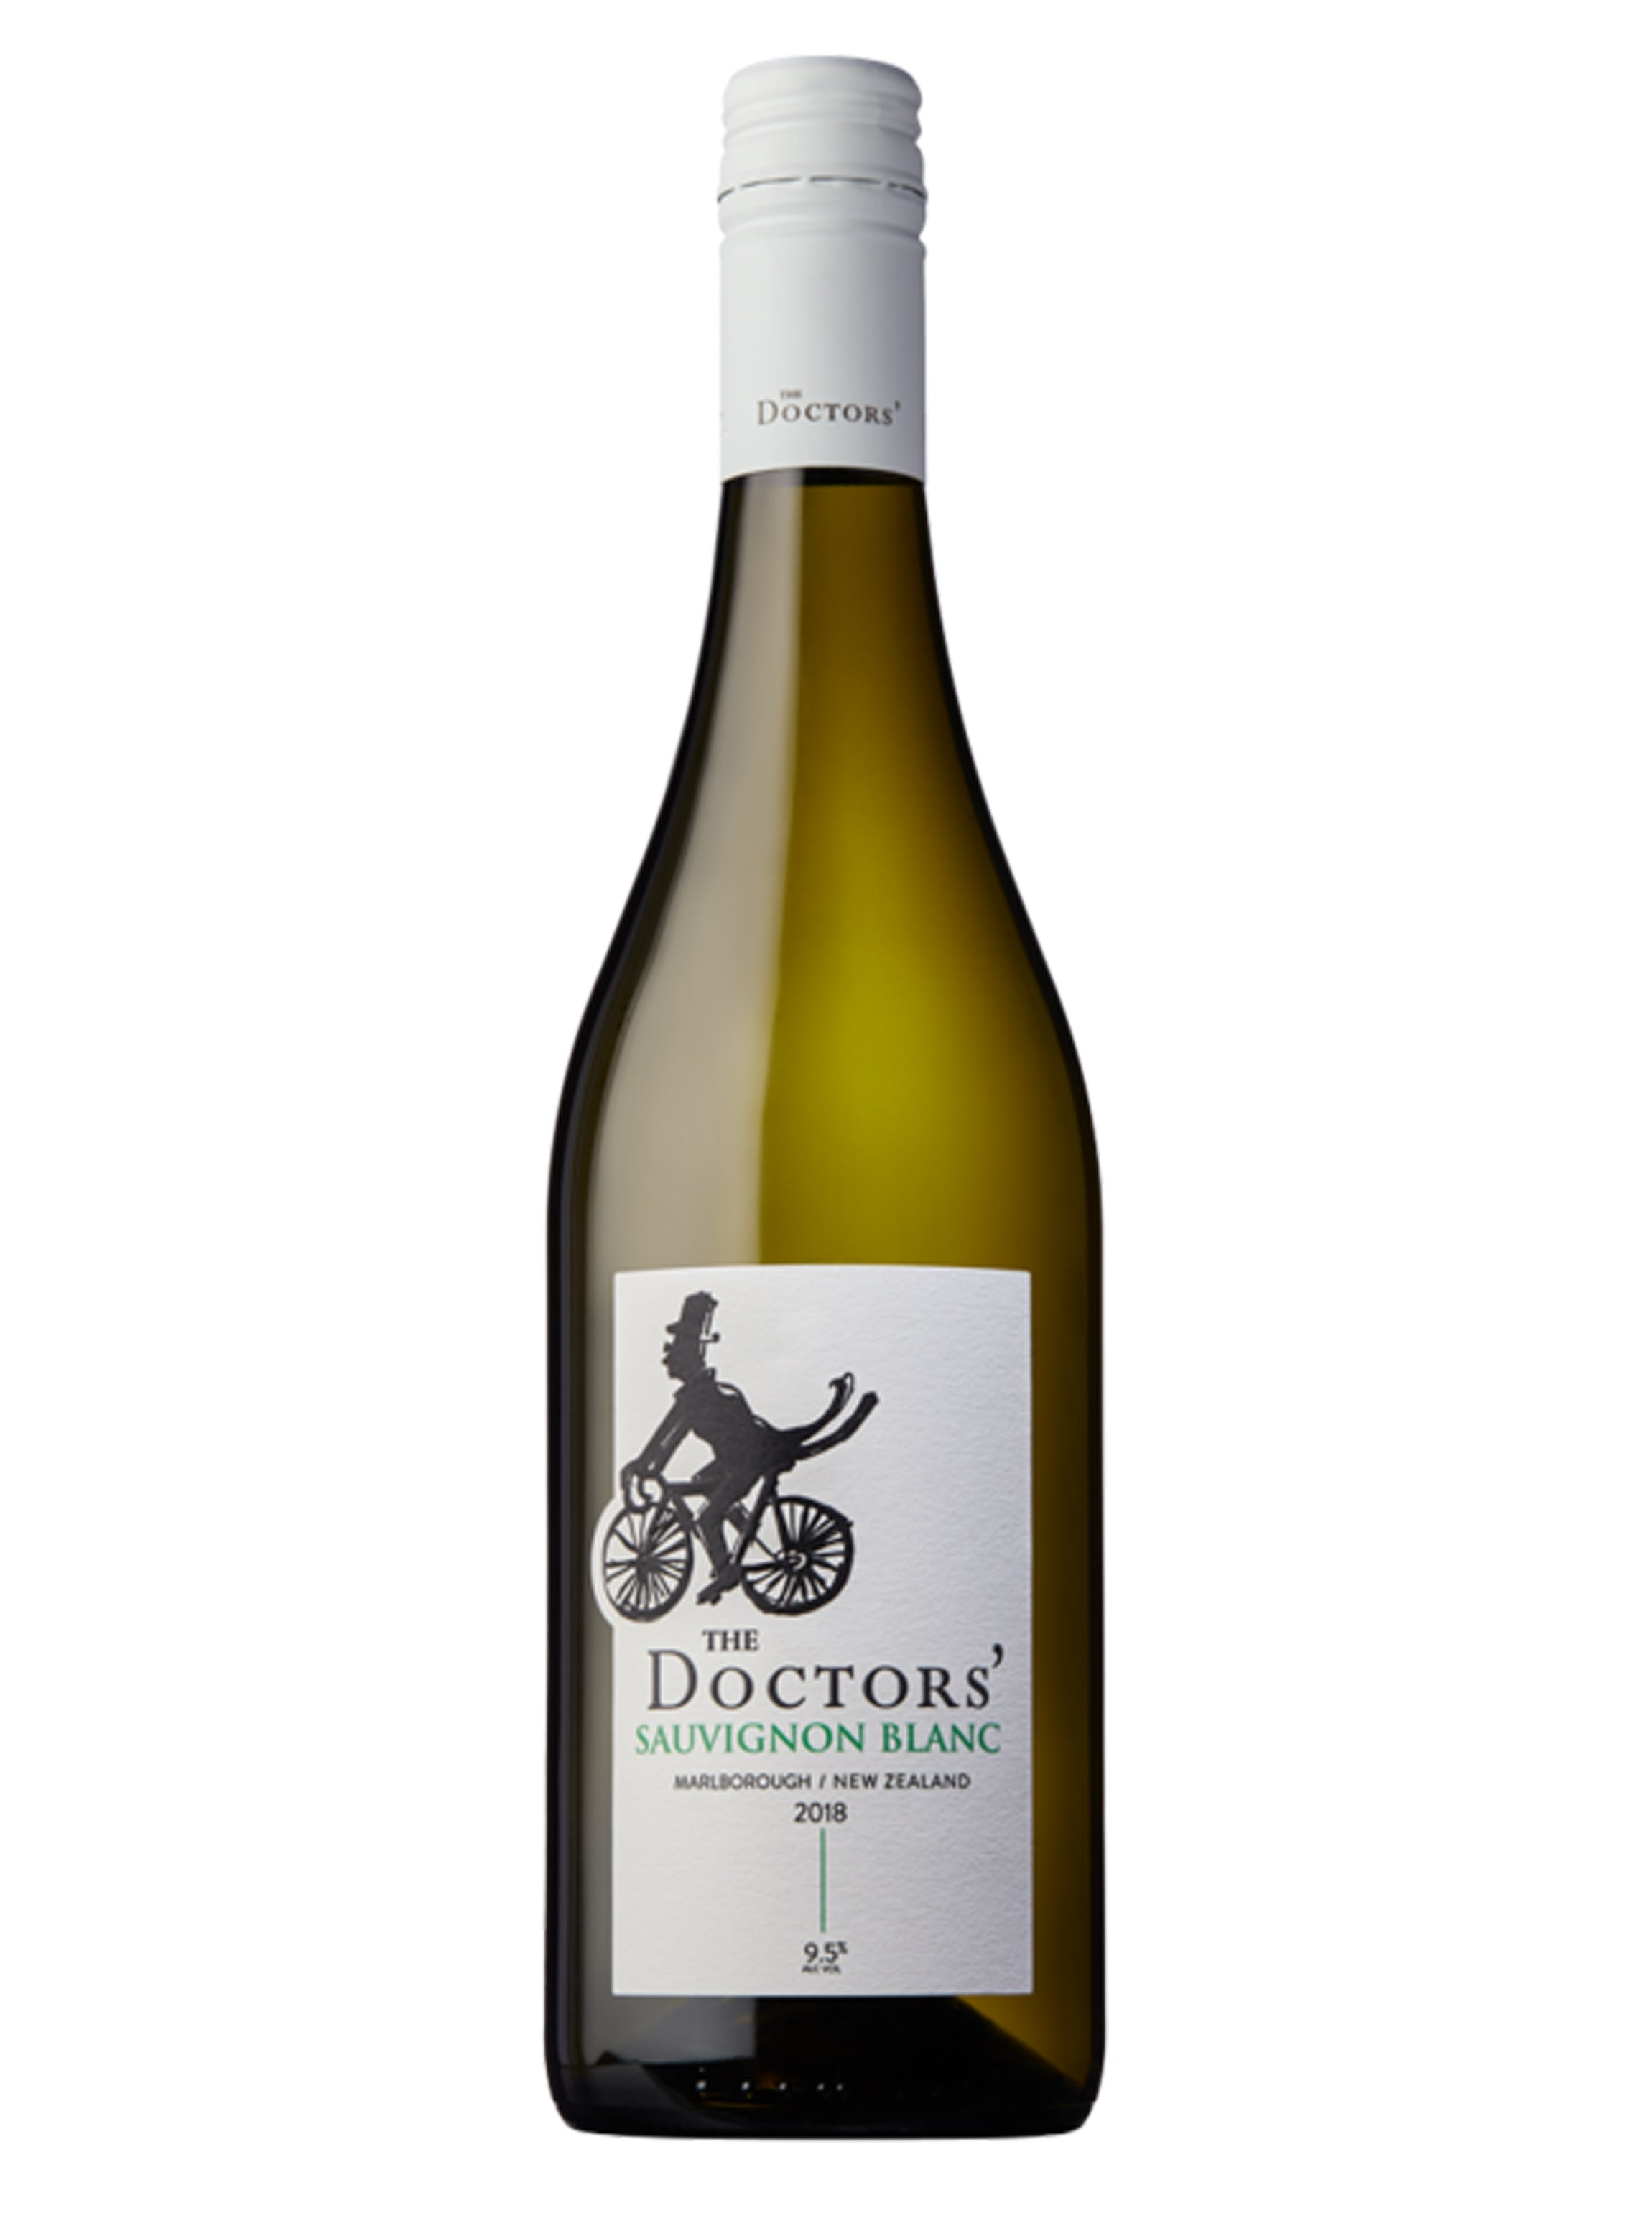 Forrest Estate The Doctors Sauvignon Blanc 2018